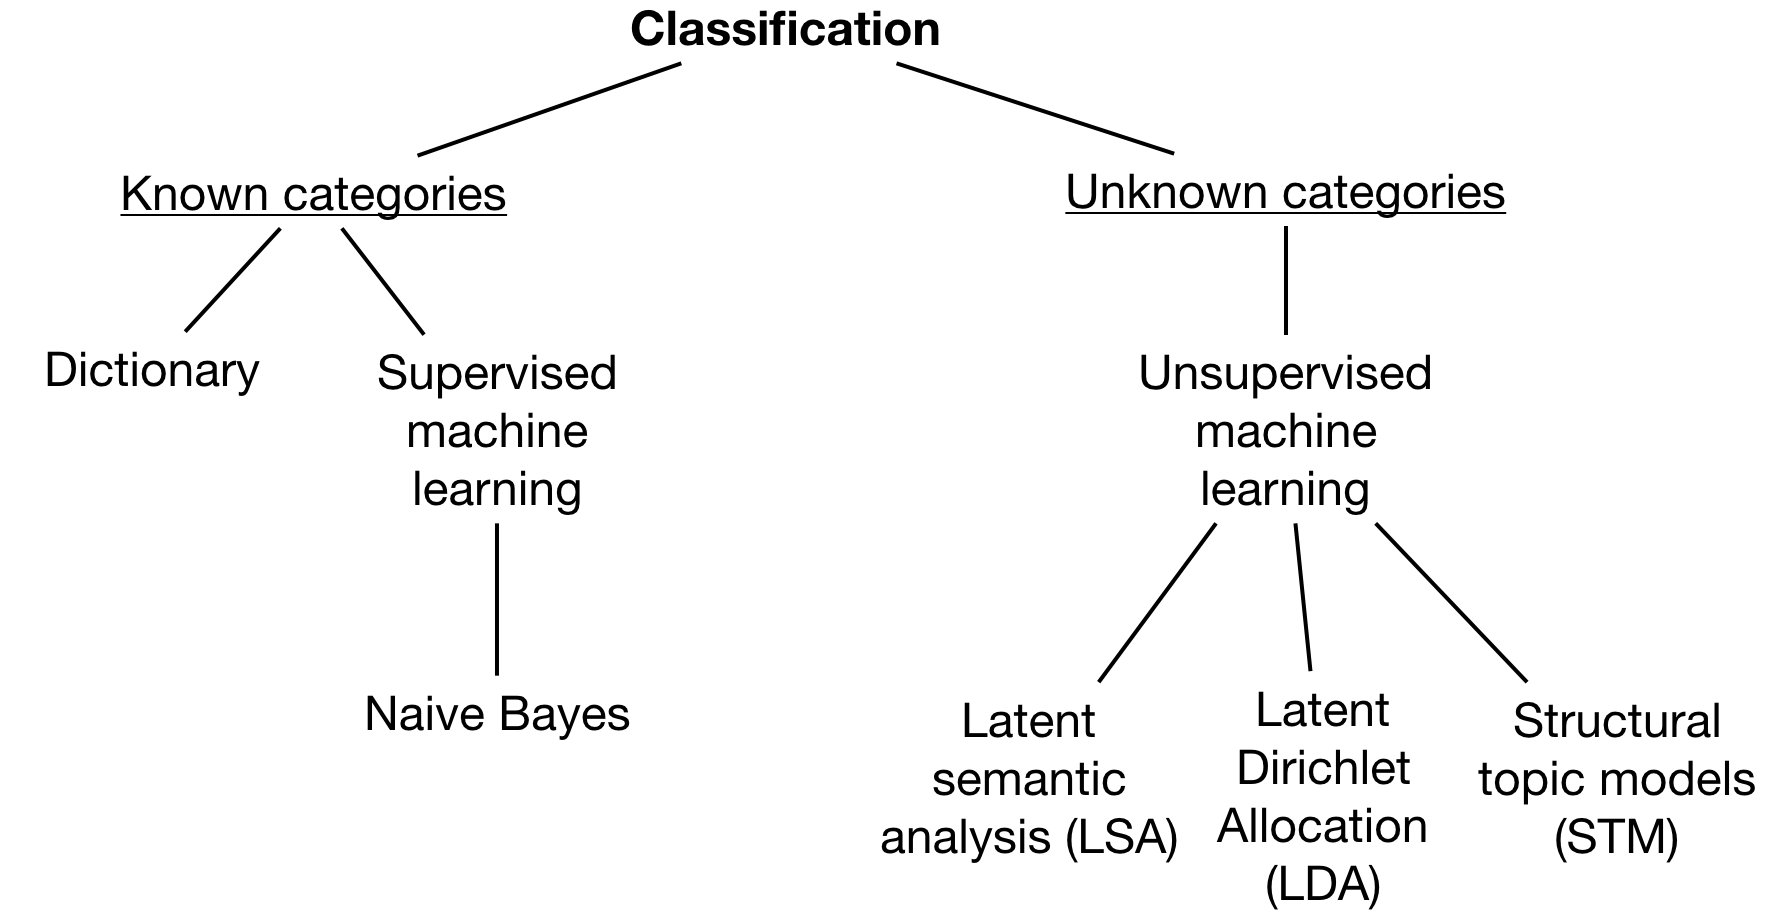 Overview of classification (own illustration, based on [Grimmer and Stewart (2013, 268)](https://www.cambridge.org/core/journals/political-analysis/article/text-as-data-the-promise-and-pitfalls-of-automatic-content-analysis-methods-for-political-texts/F7AAC8B2909441603FEB25C156448F20))